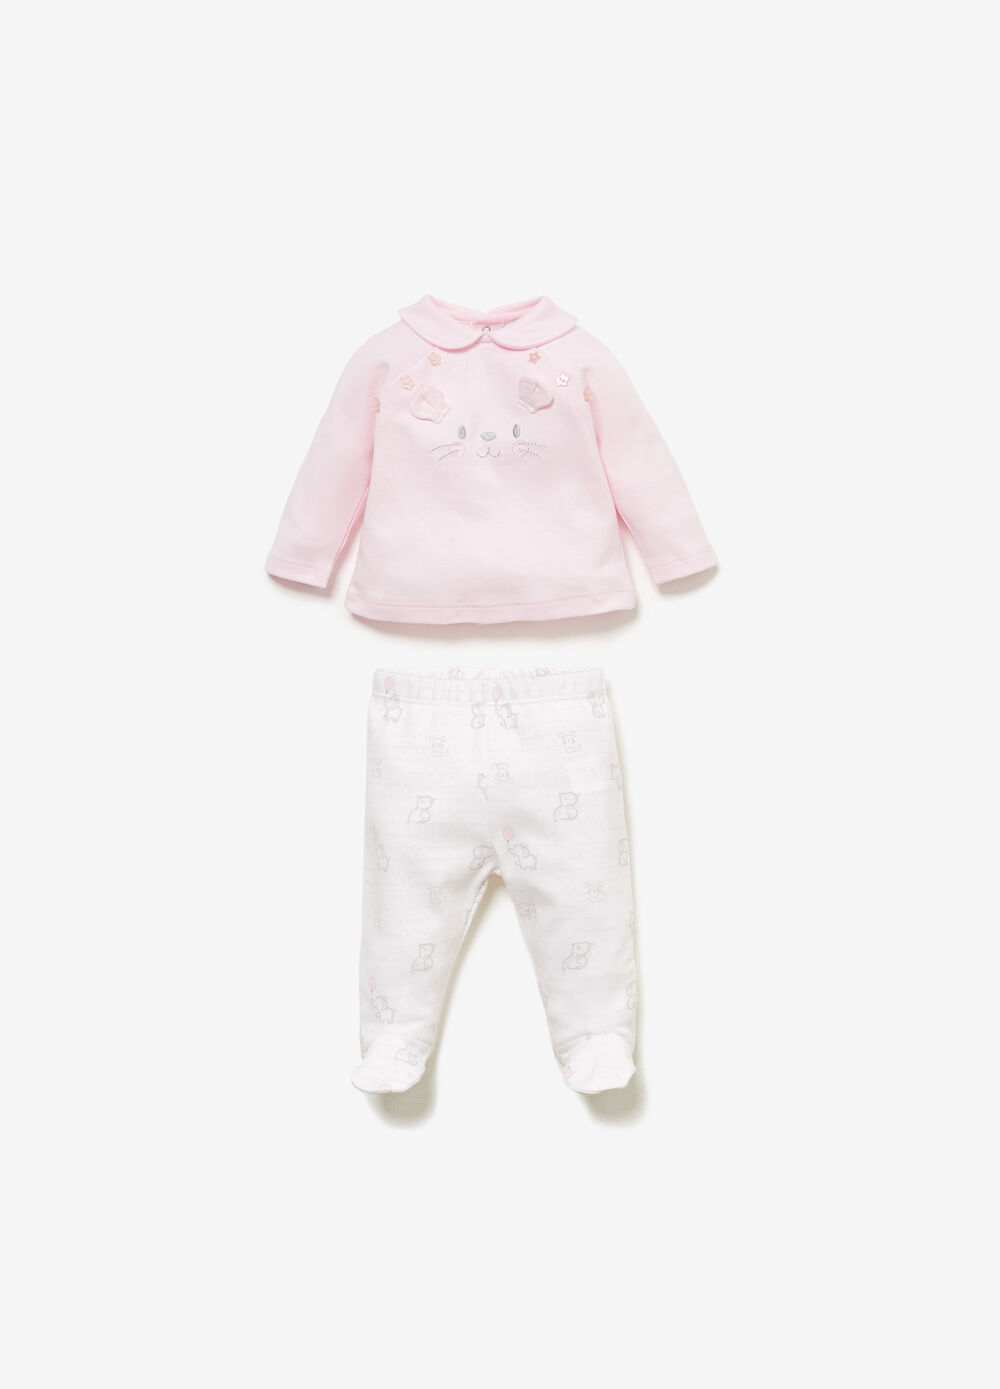 Cotton outfit with animal embroidery